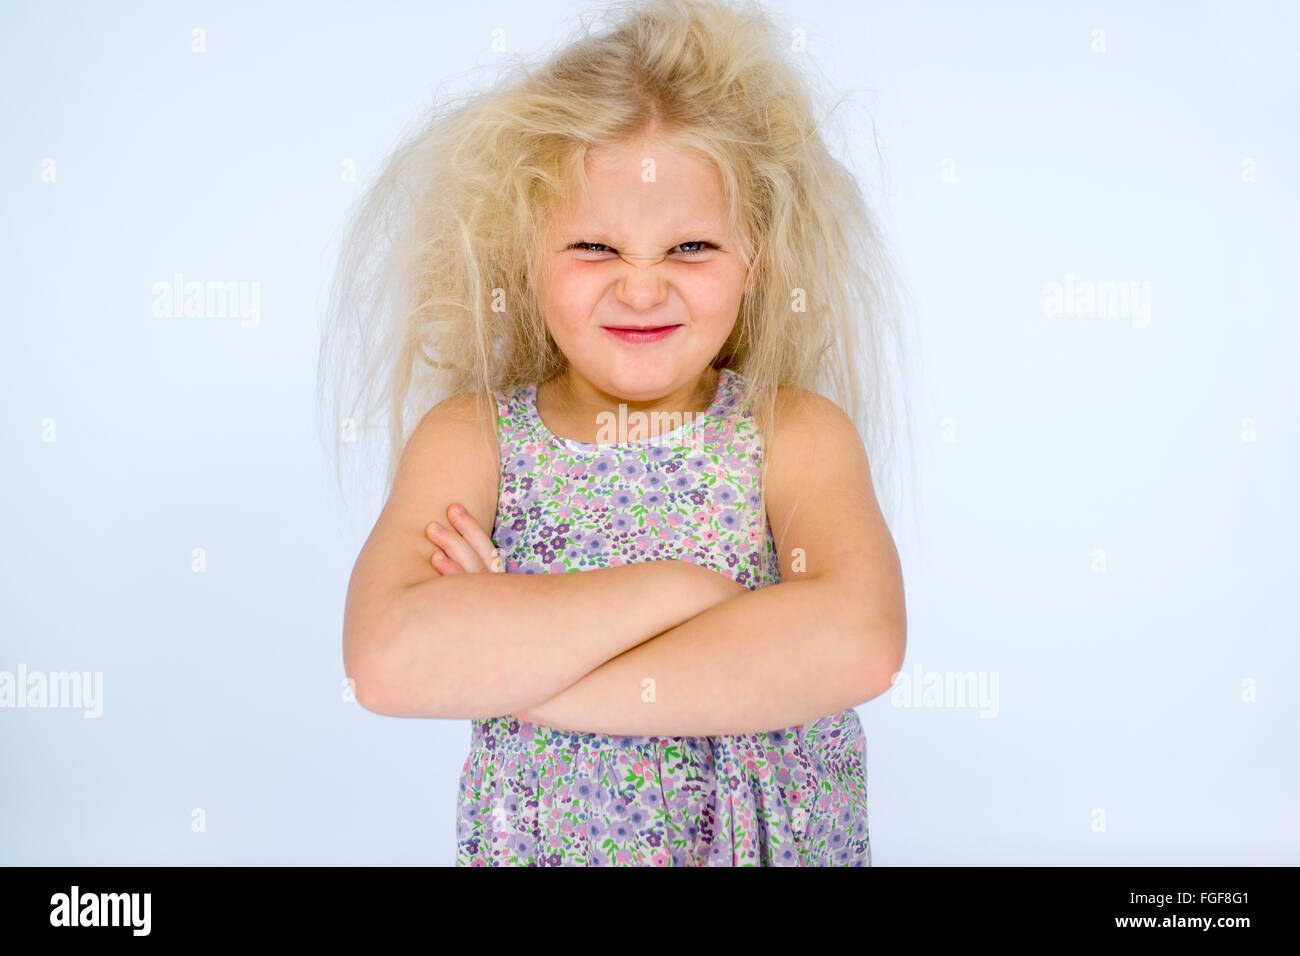 Young girl with messy blonde hair frowning with folded arms and a cheeky grin Stock Photo